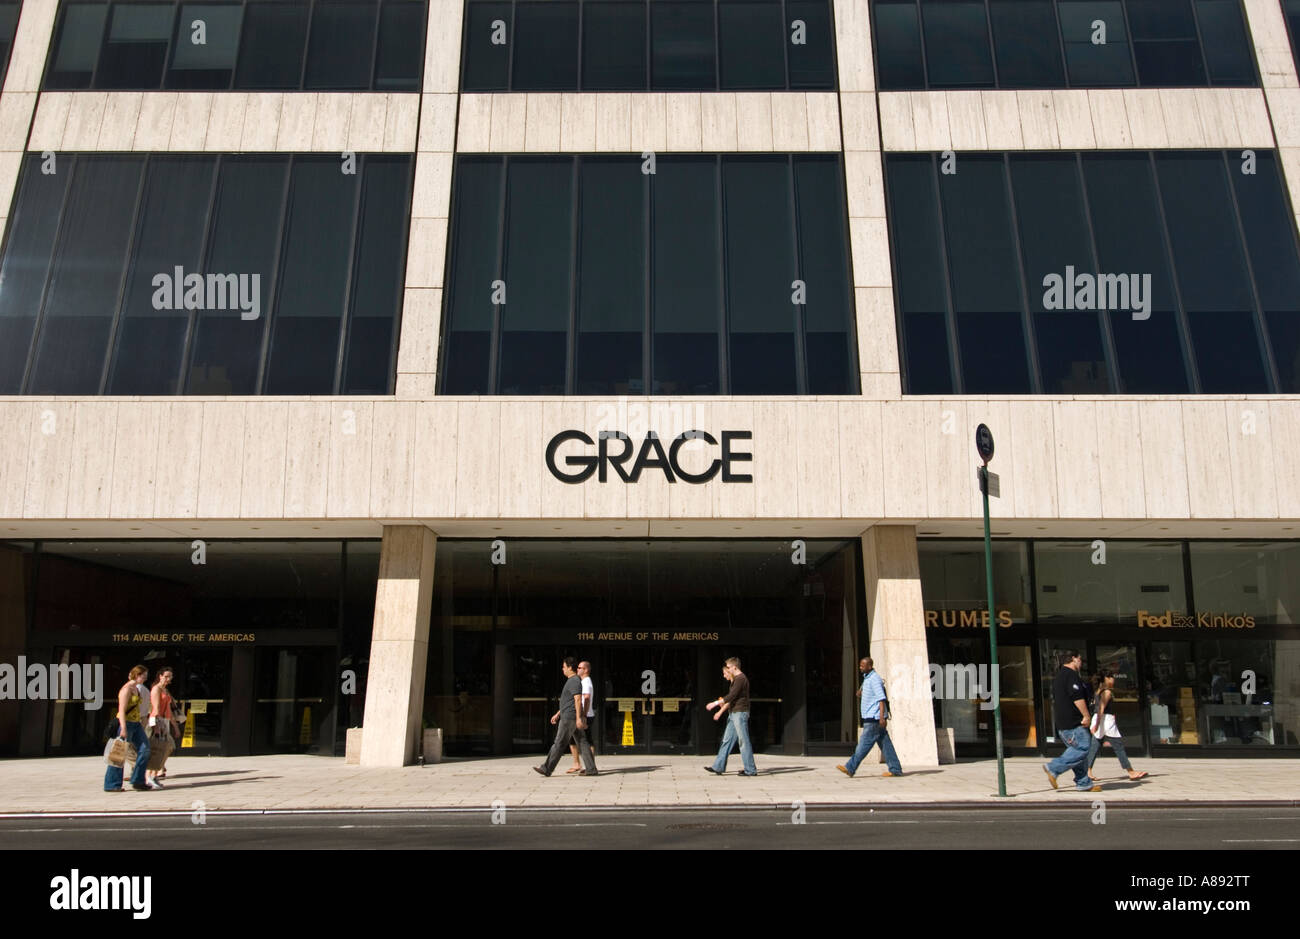 W.R. Grace Building in Manhattan - Stock Image